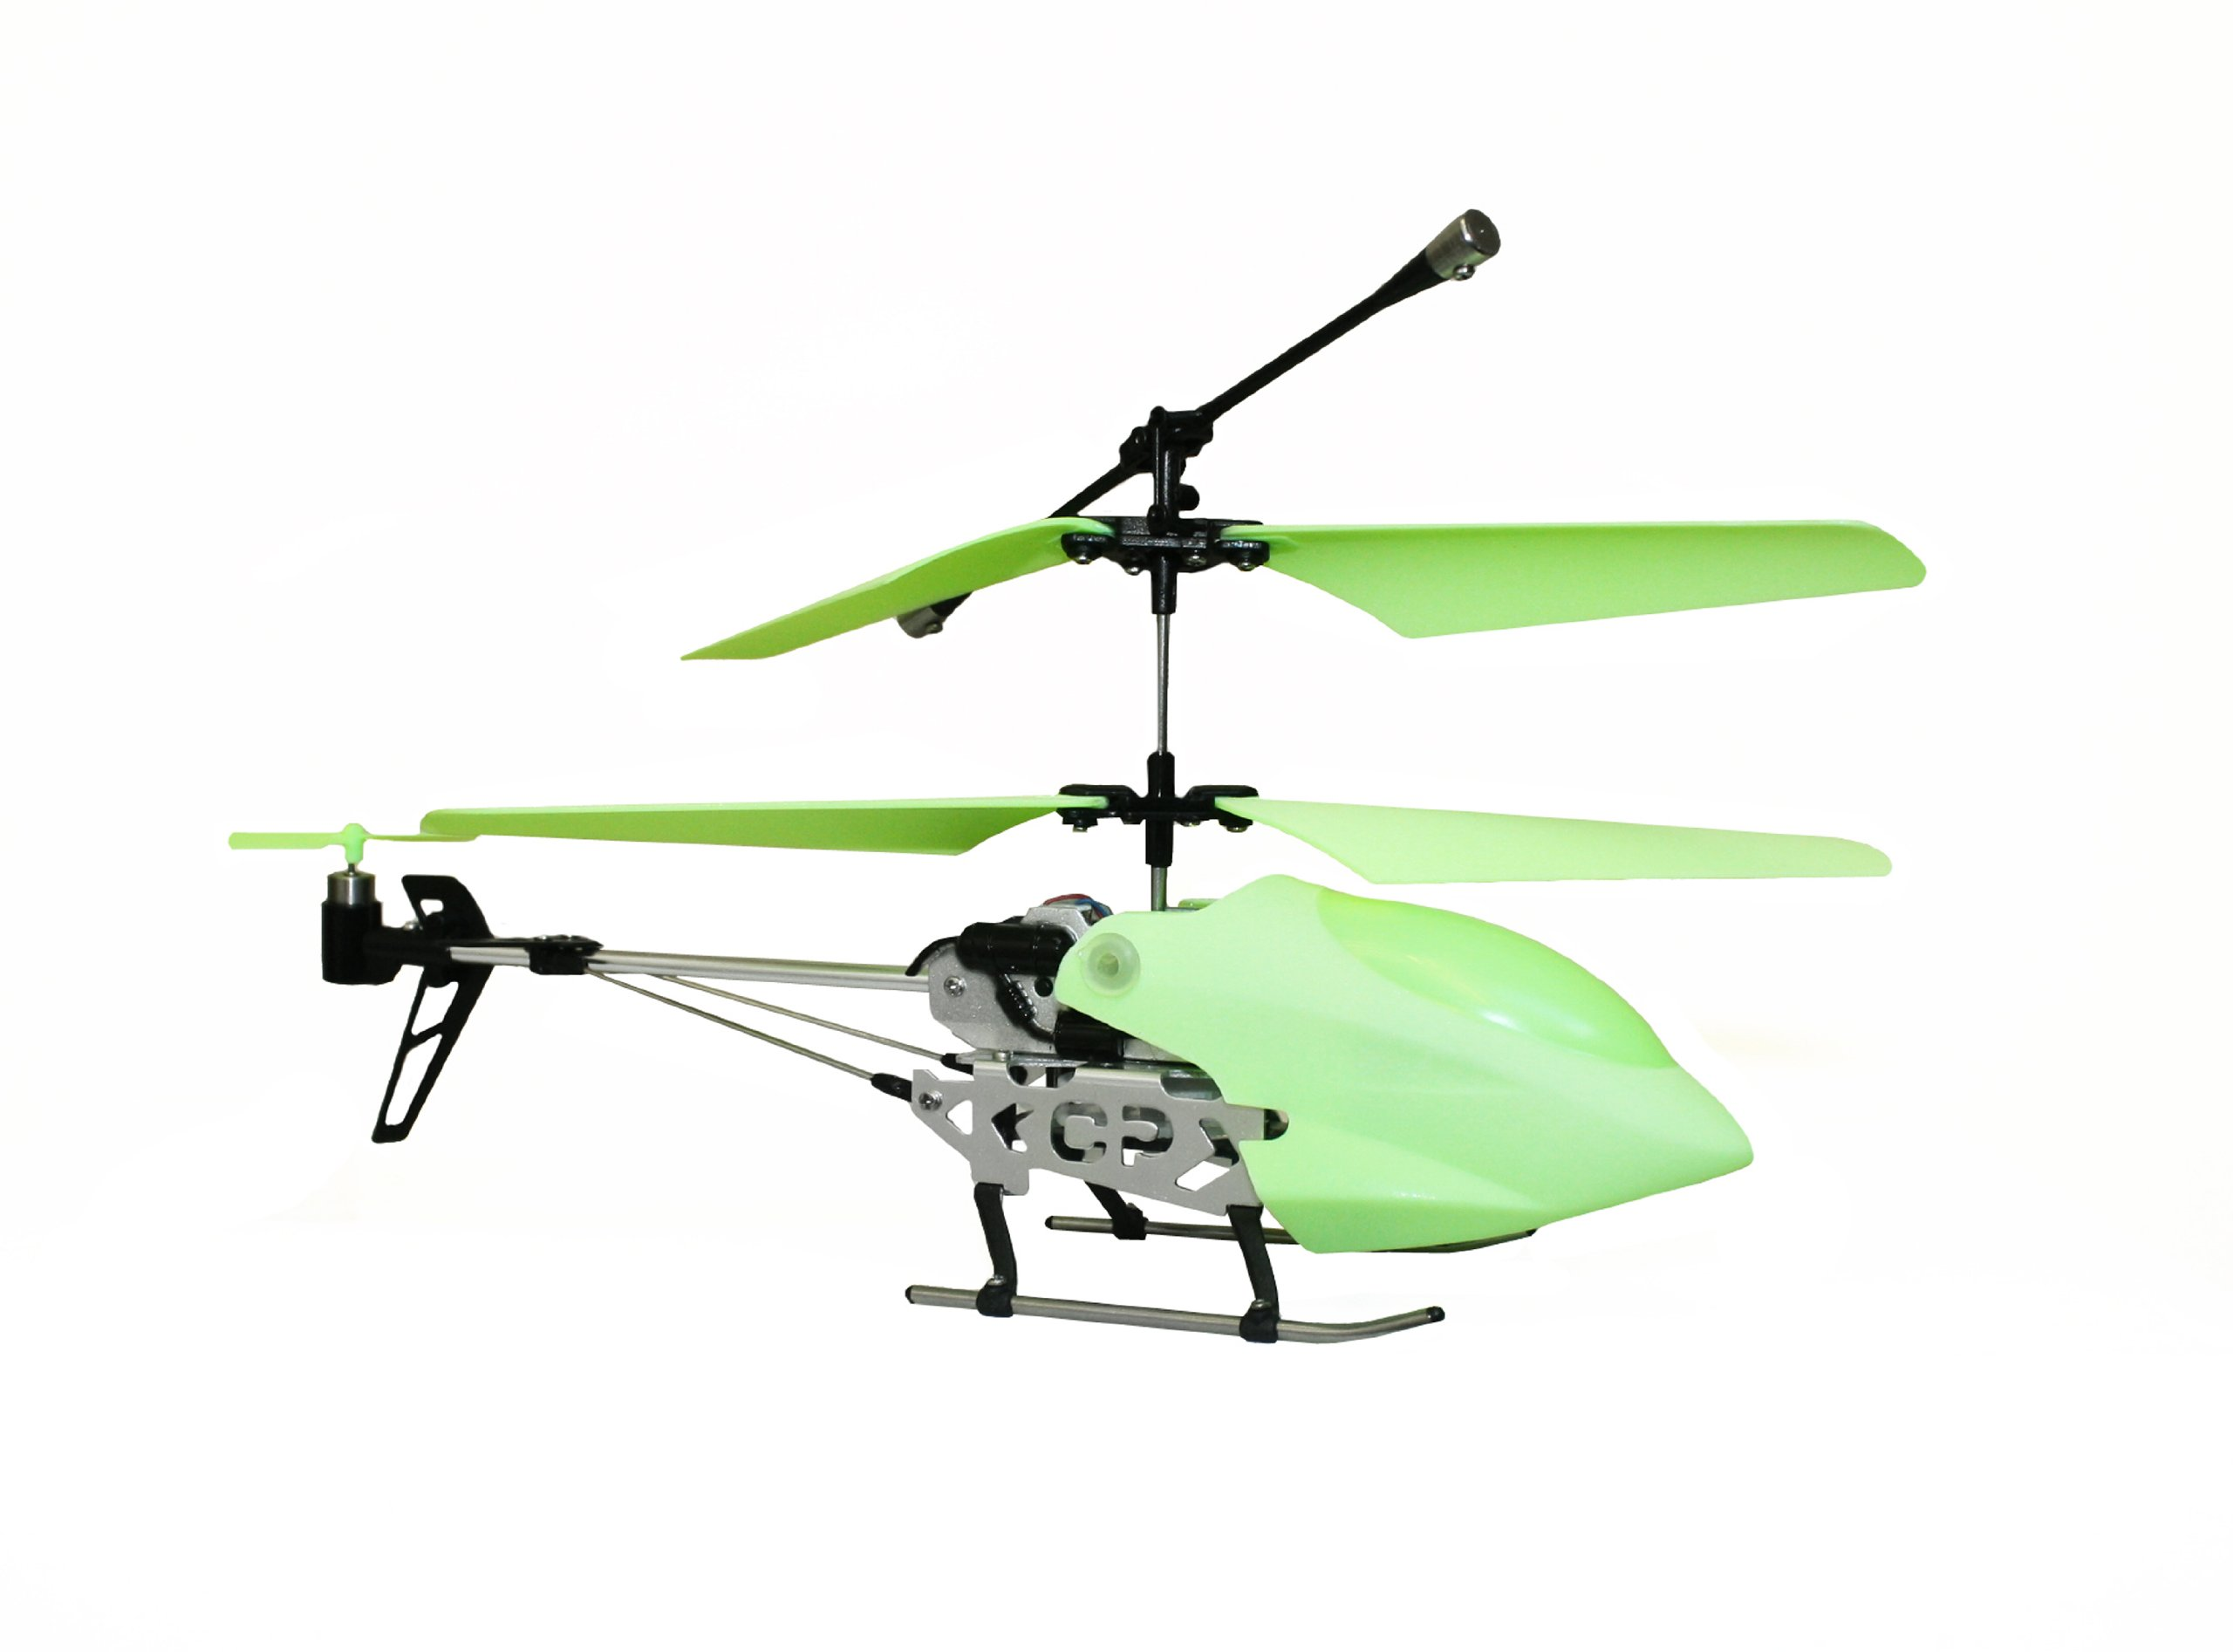 THUMBS UP Thumbsup UK, Glow in The Dark RC Helicopter